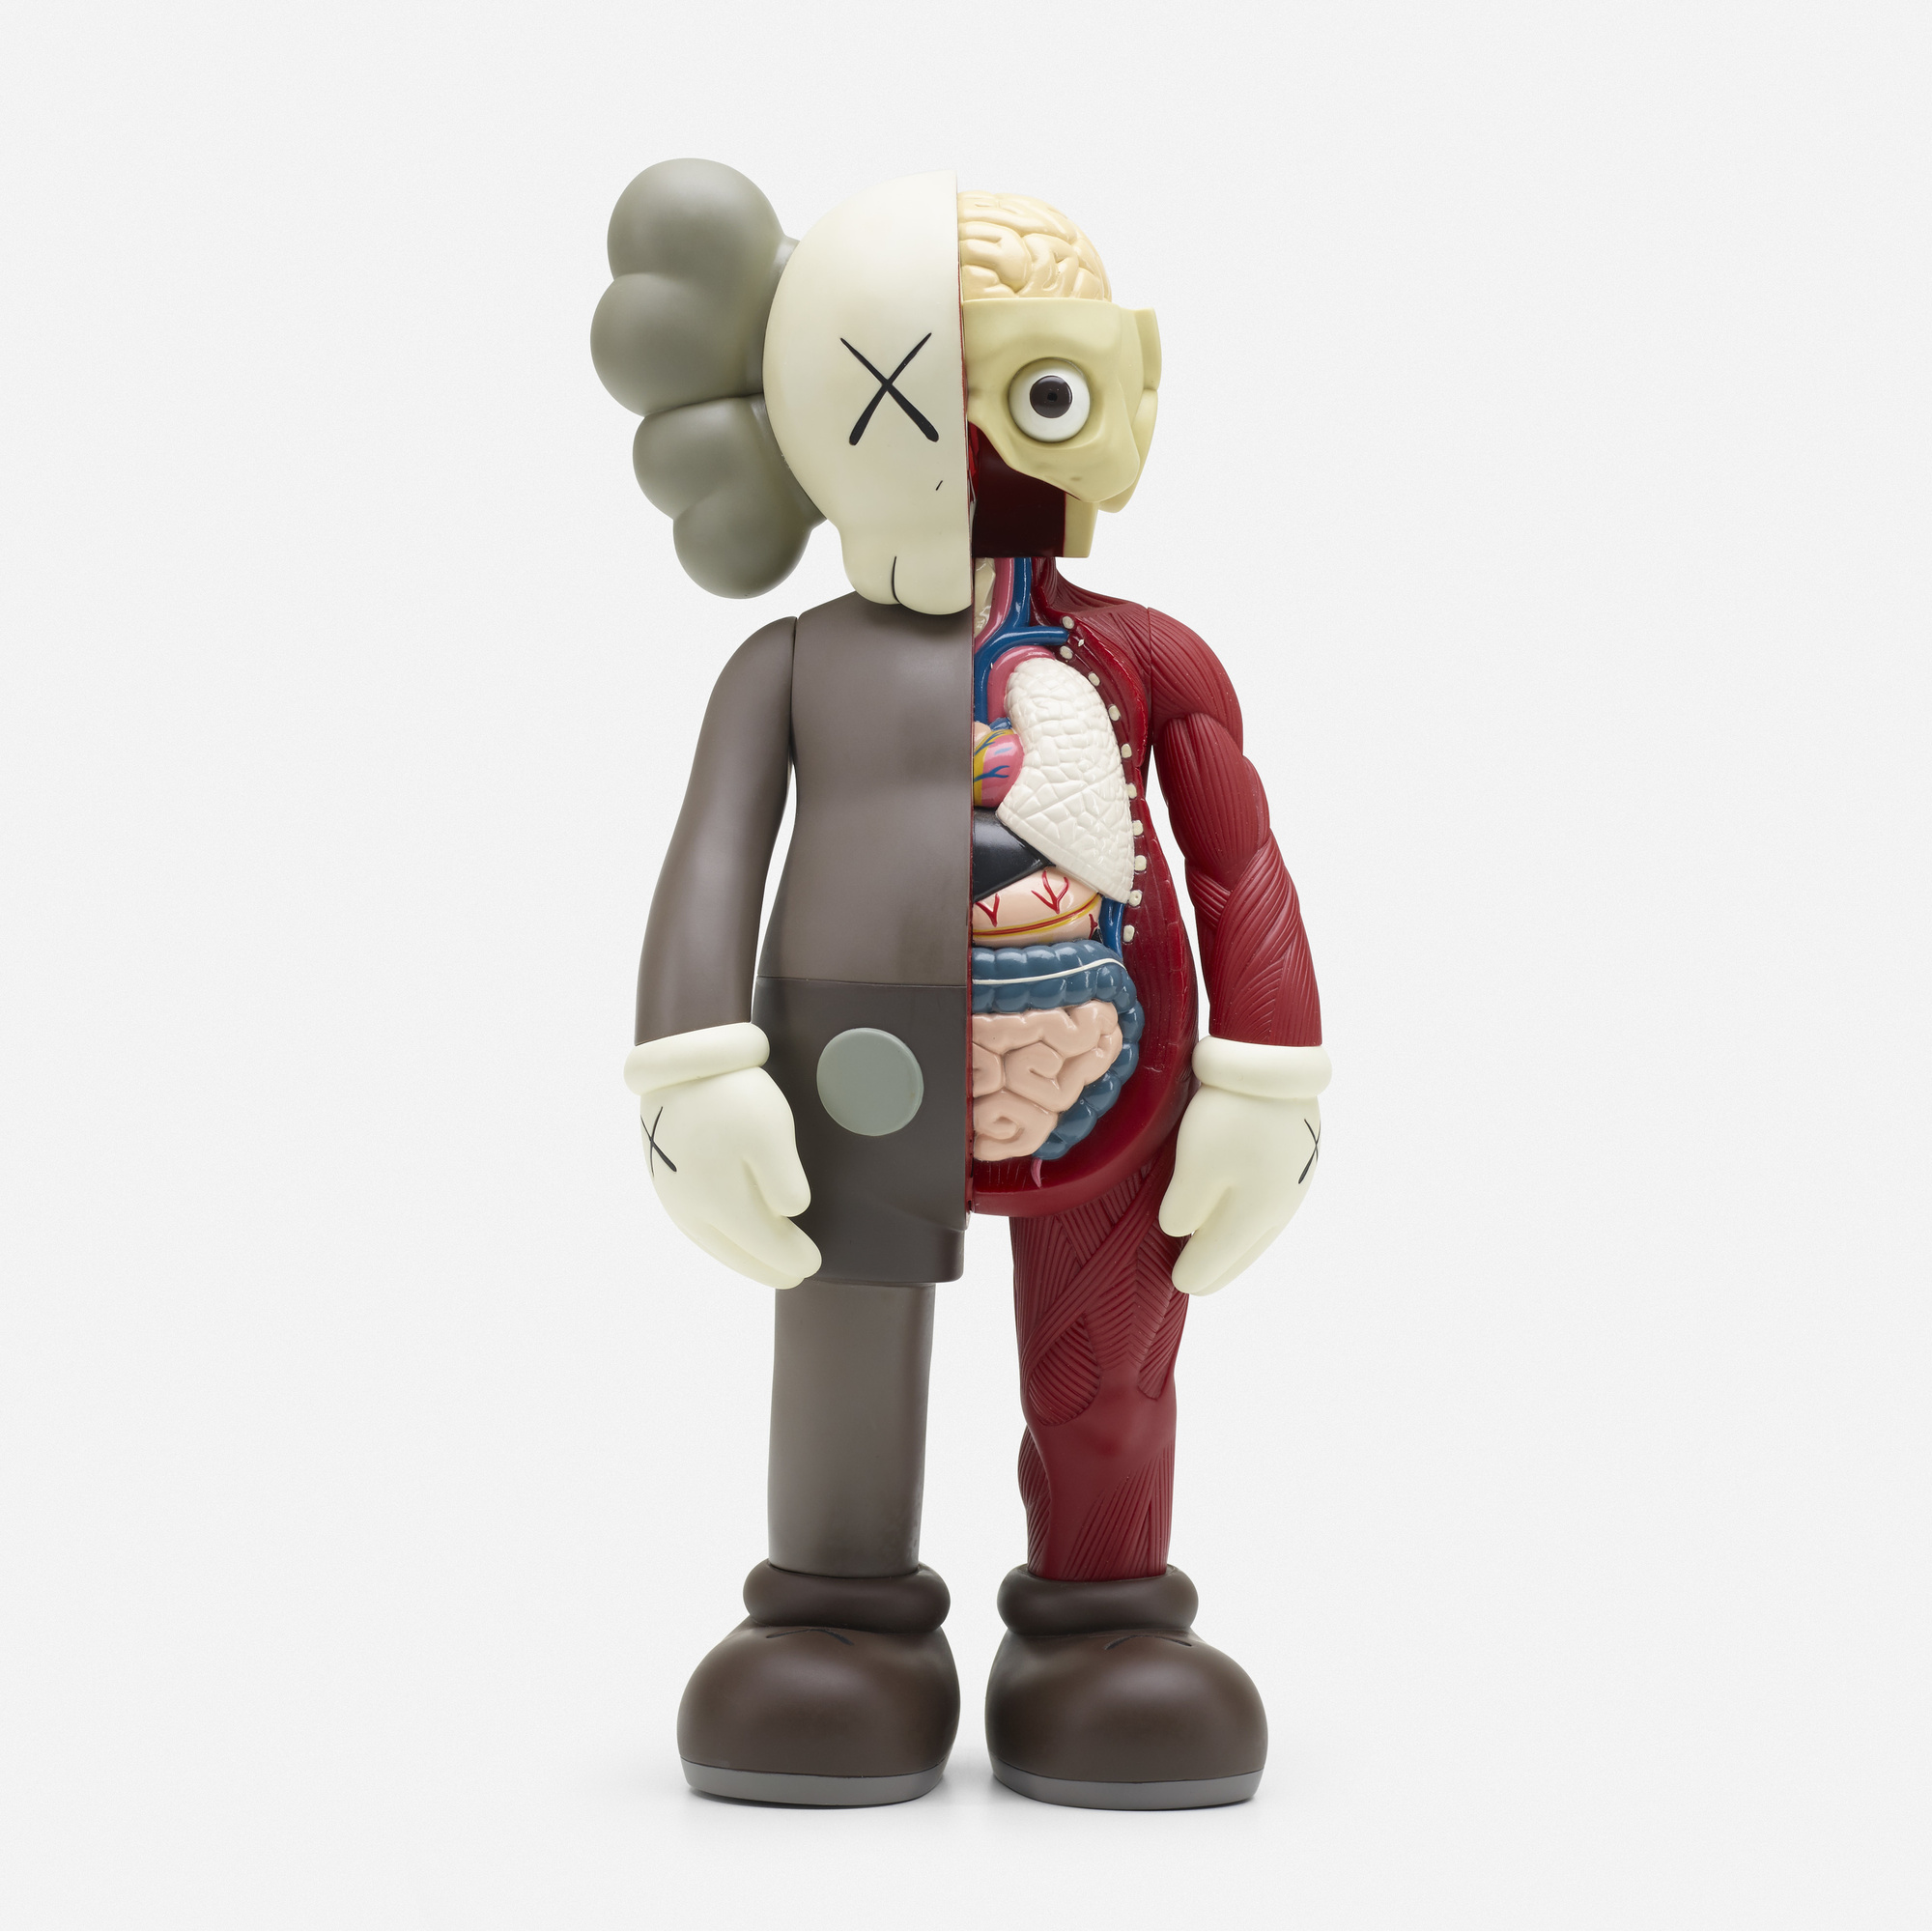 e8f05098dd90 205  KAWS (Brian Donnelly)   Companion – Dissected Brown Colorway (1 of